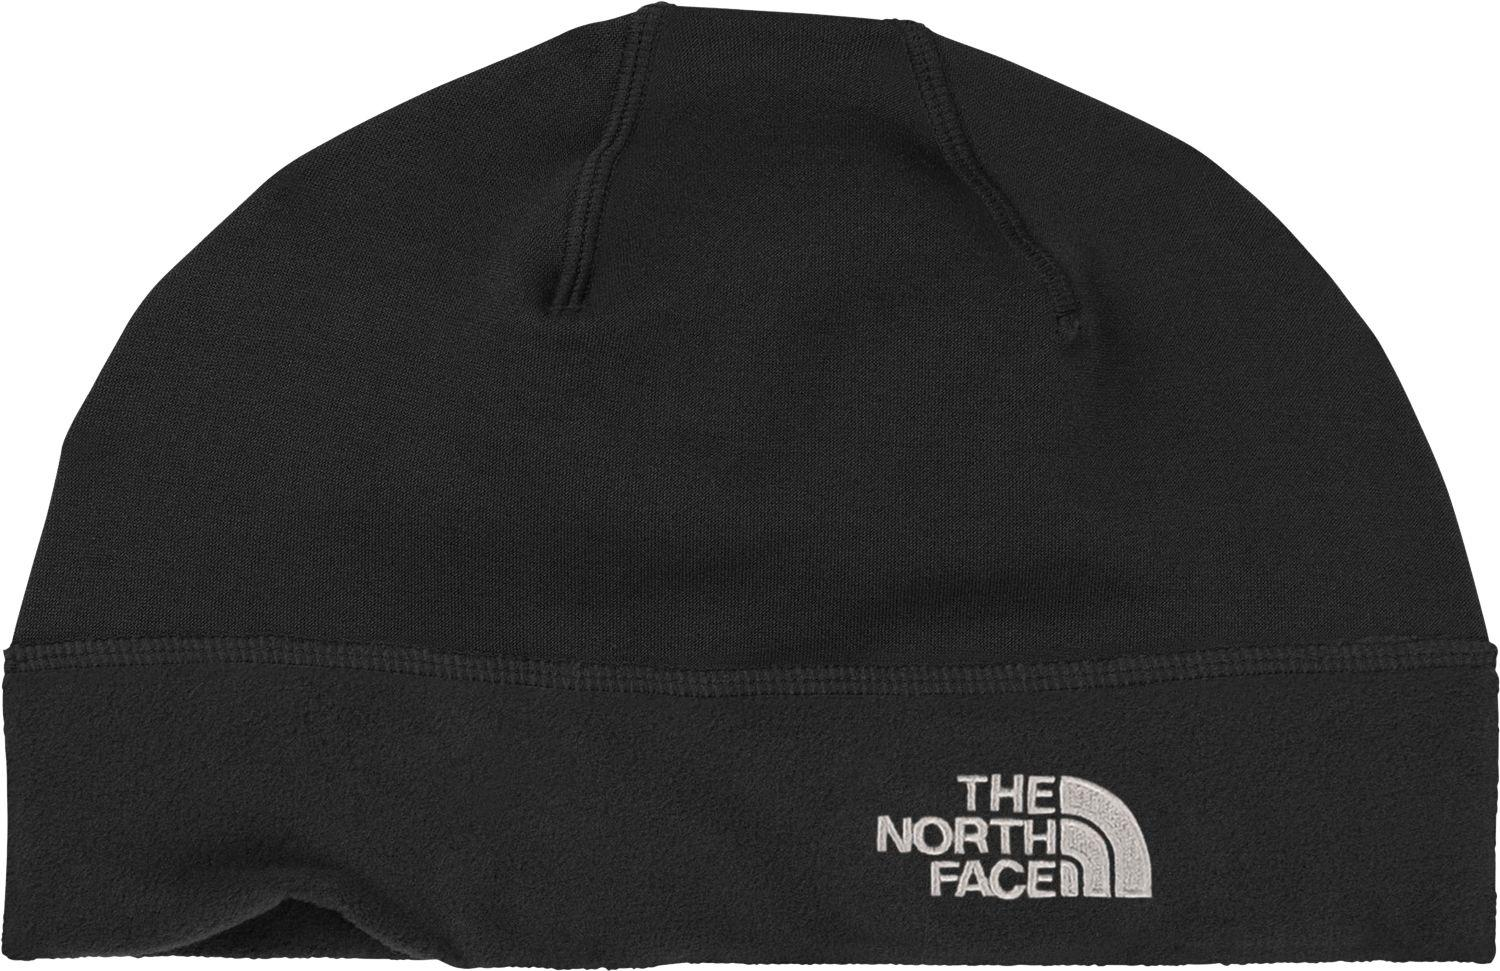 Lyst - The North Face Ascent Beanie Hat in Black for Men 7947a8e82631